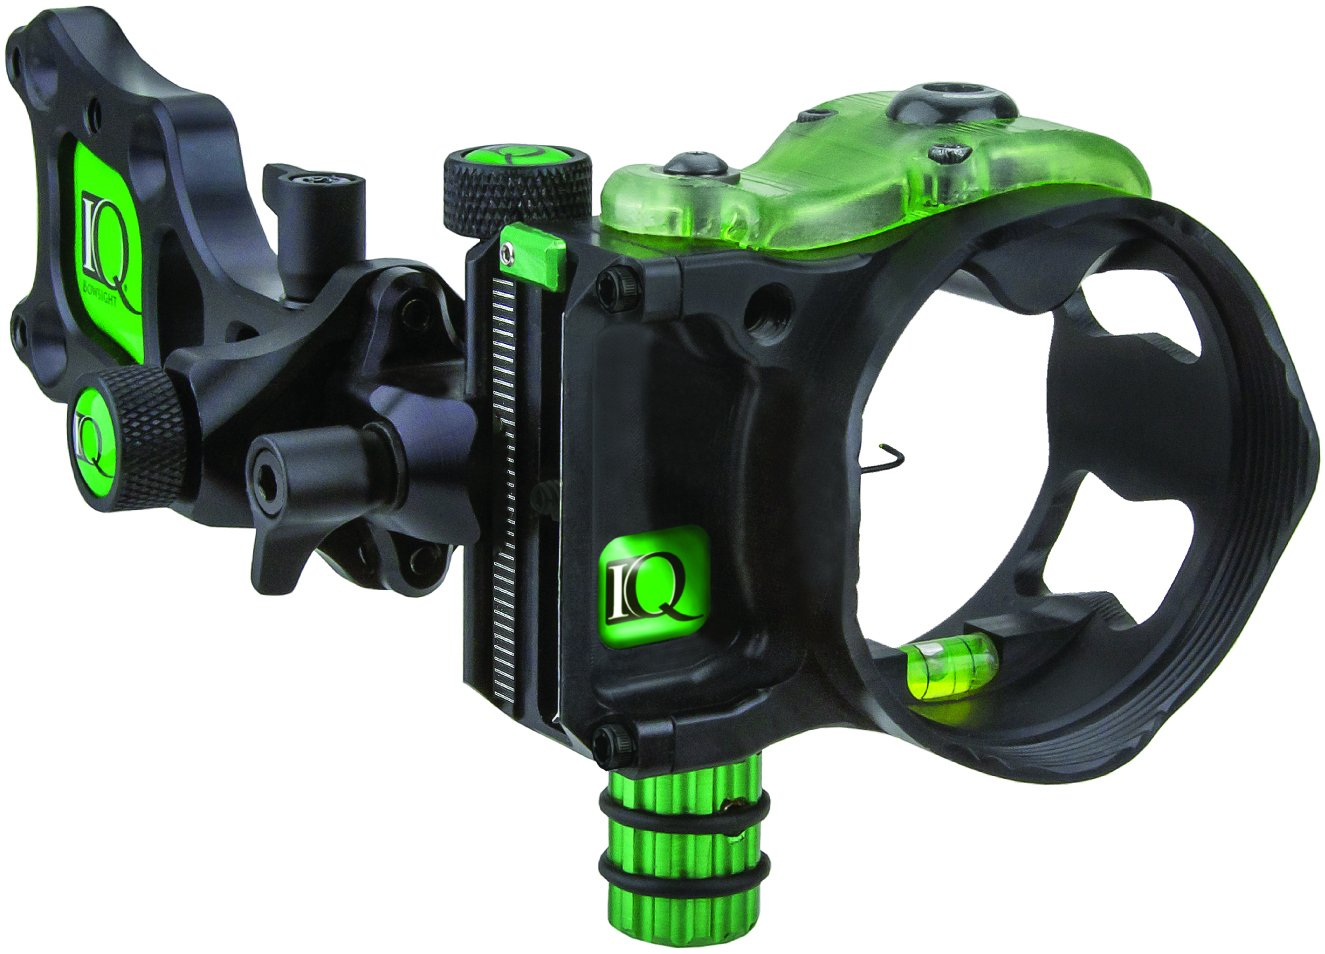 IQ Bowsight Pro-One Archery Bow Sight